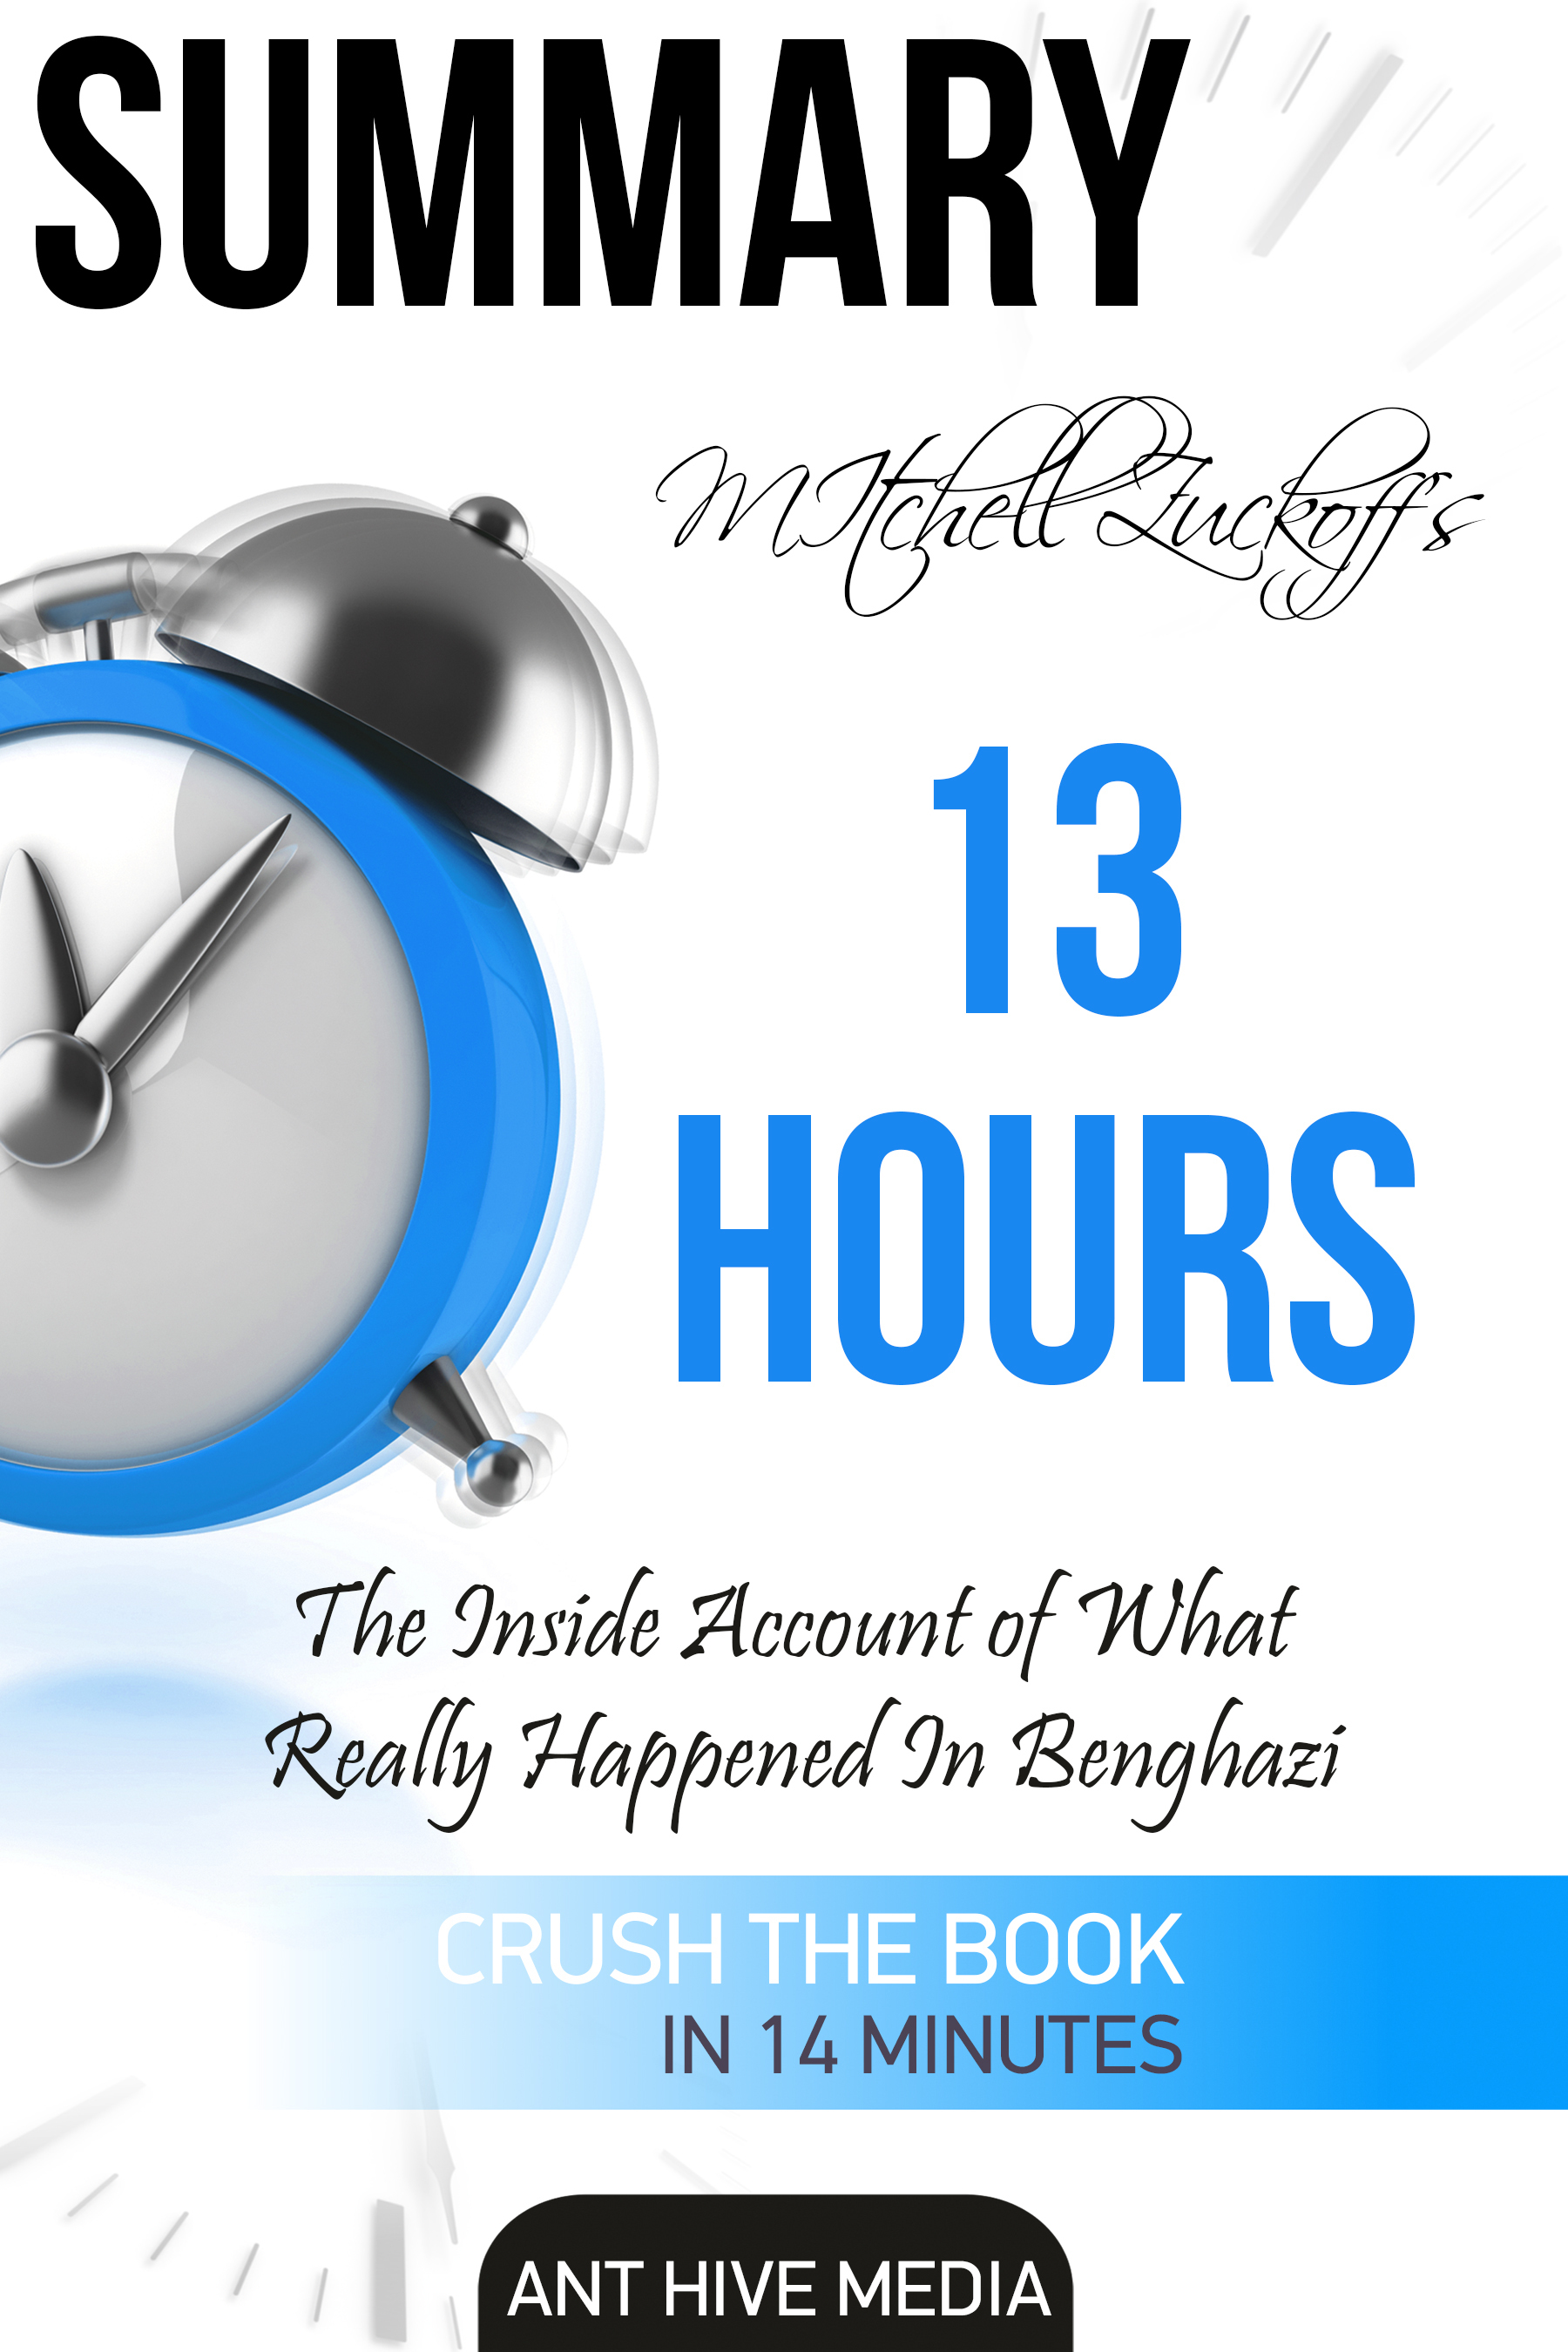 Mitchell Zuckoff's 13 Hours: The Inside Account of What Really Happened in Benghazi | Summary